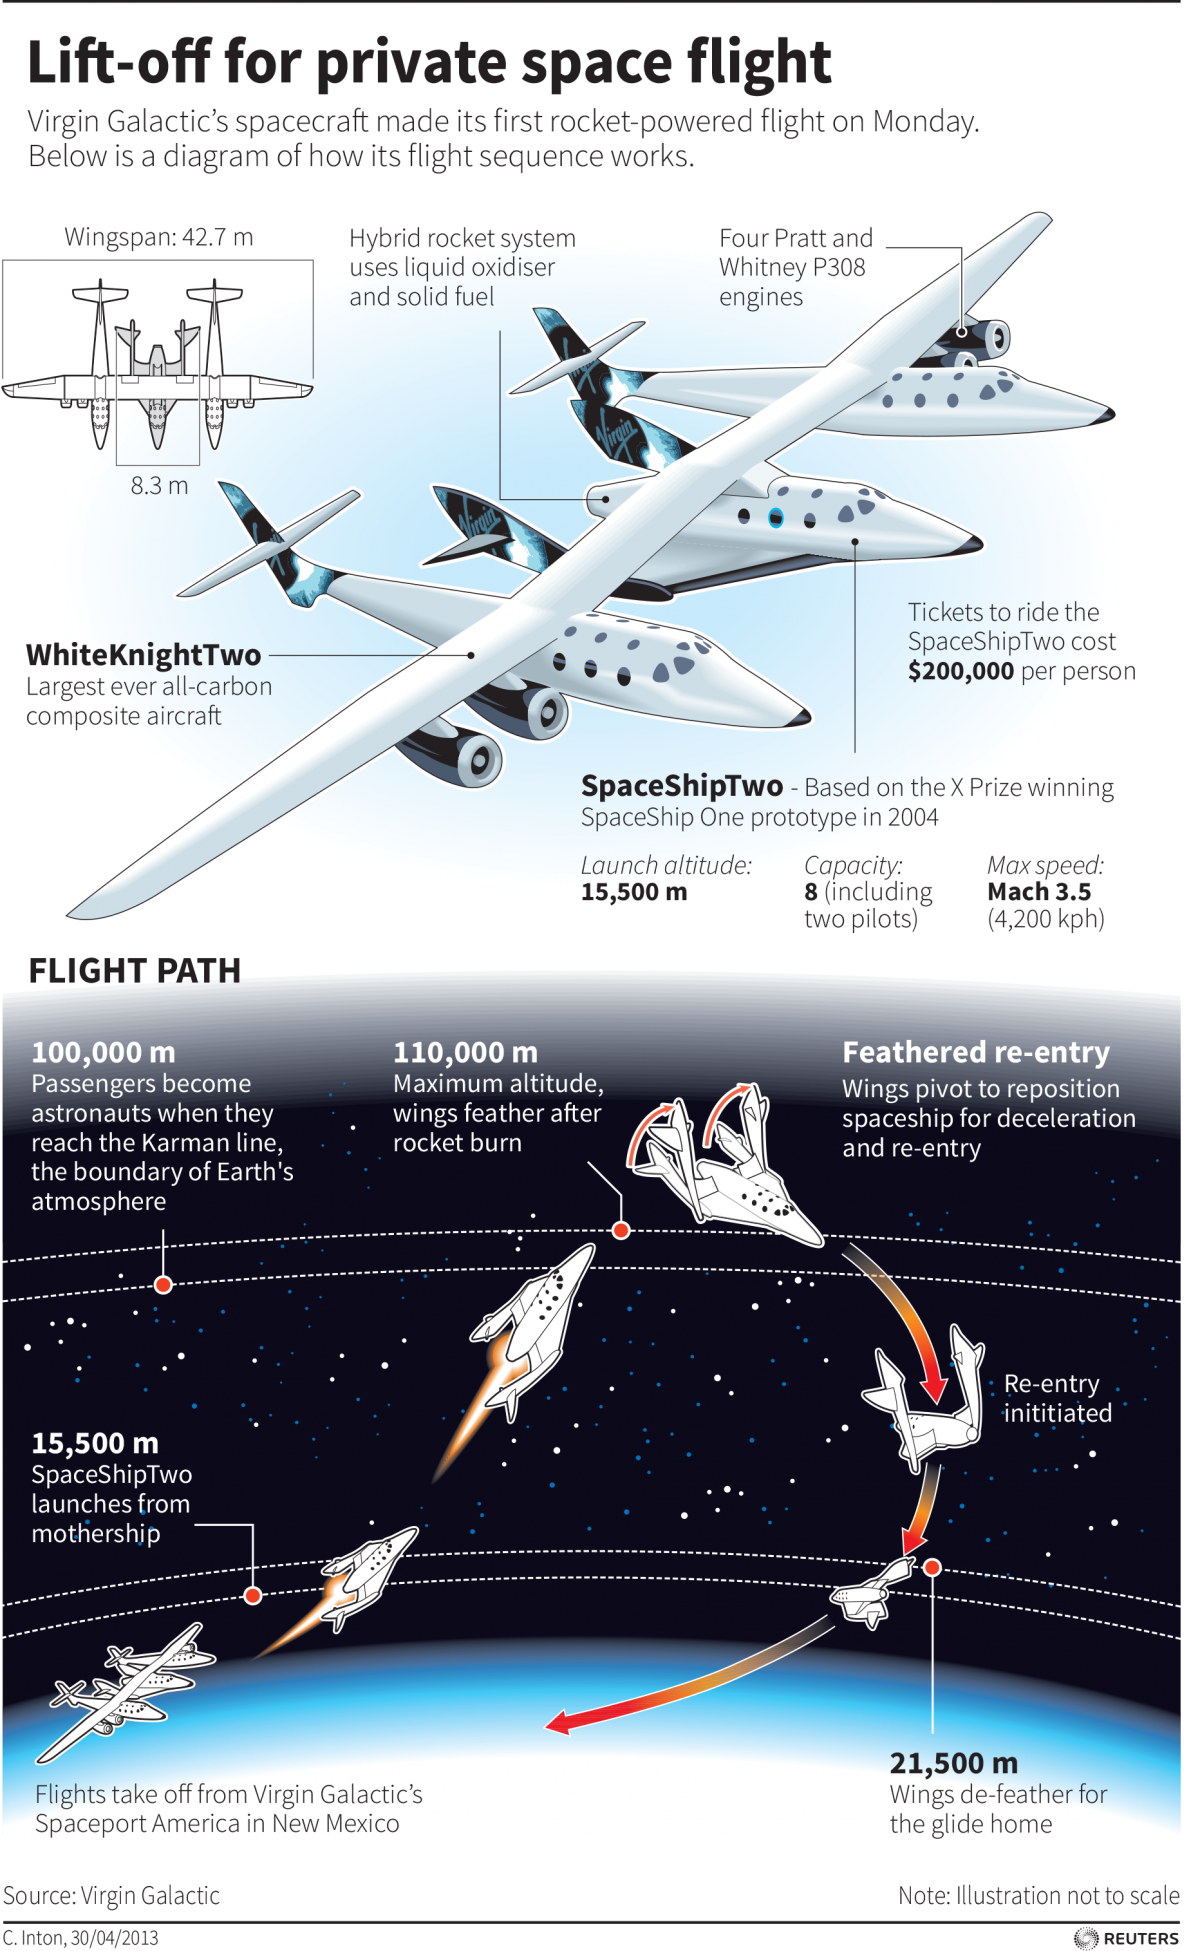 Here S A Detailed Look At How The Virgin Galactic Spacecraft Works Space Tourism Space And Astronomy Space Travel